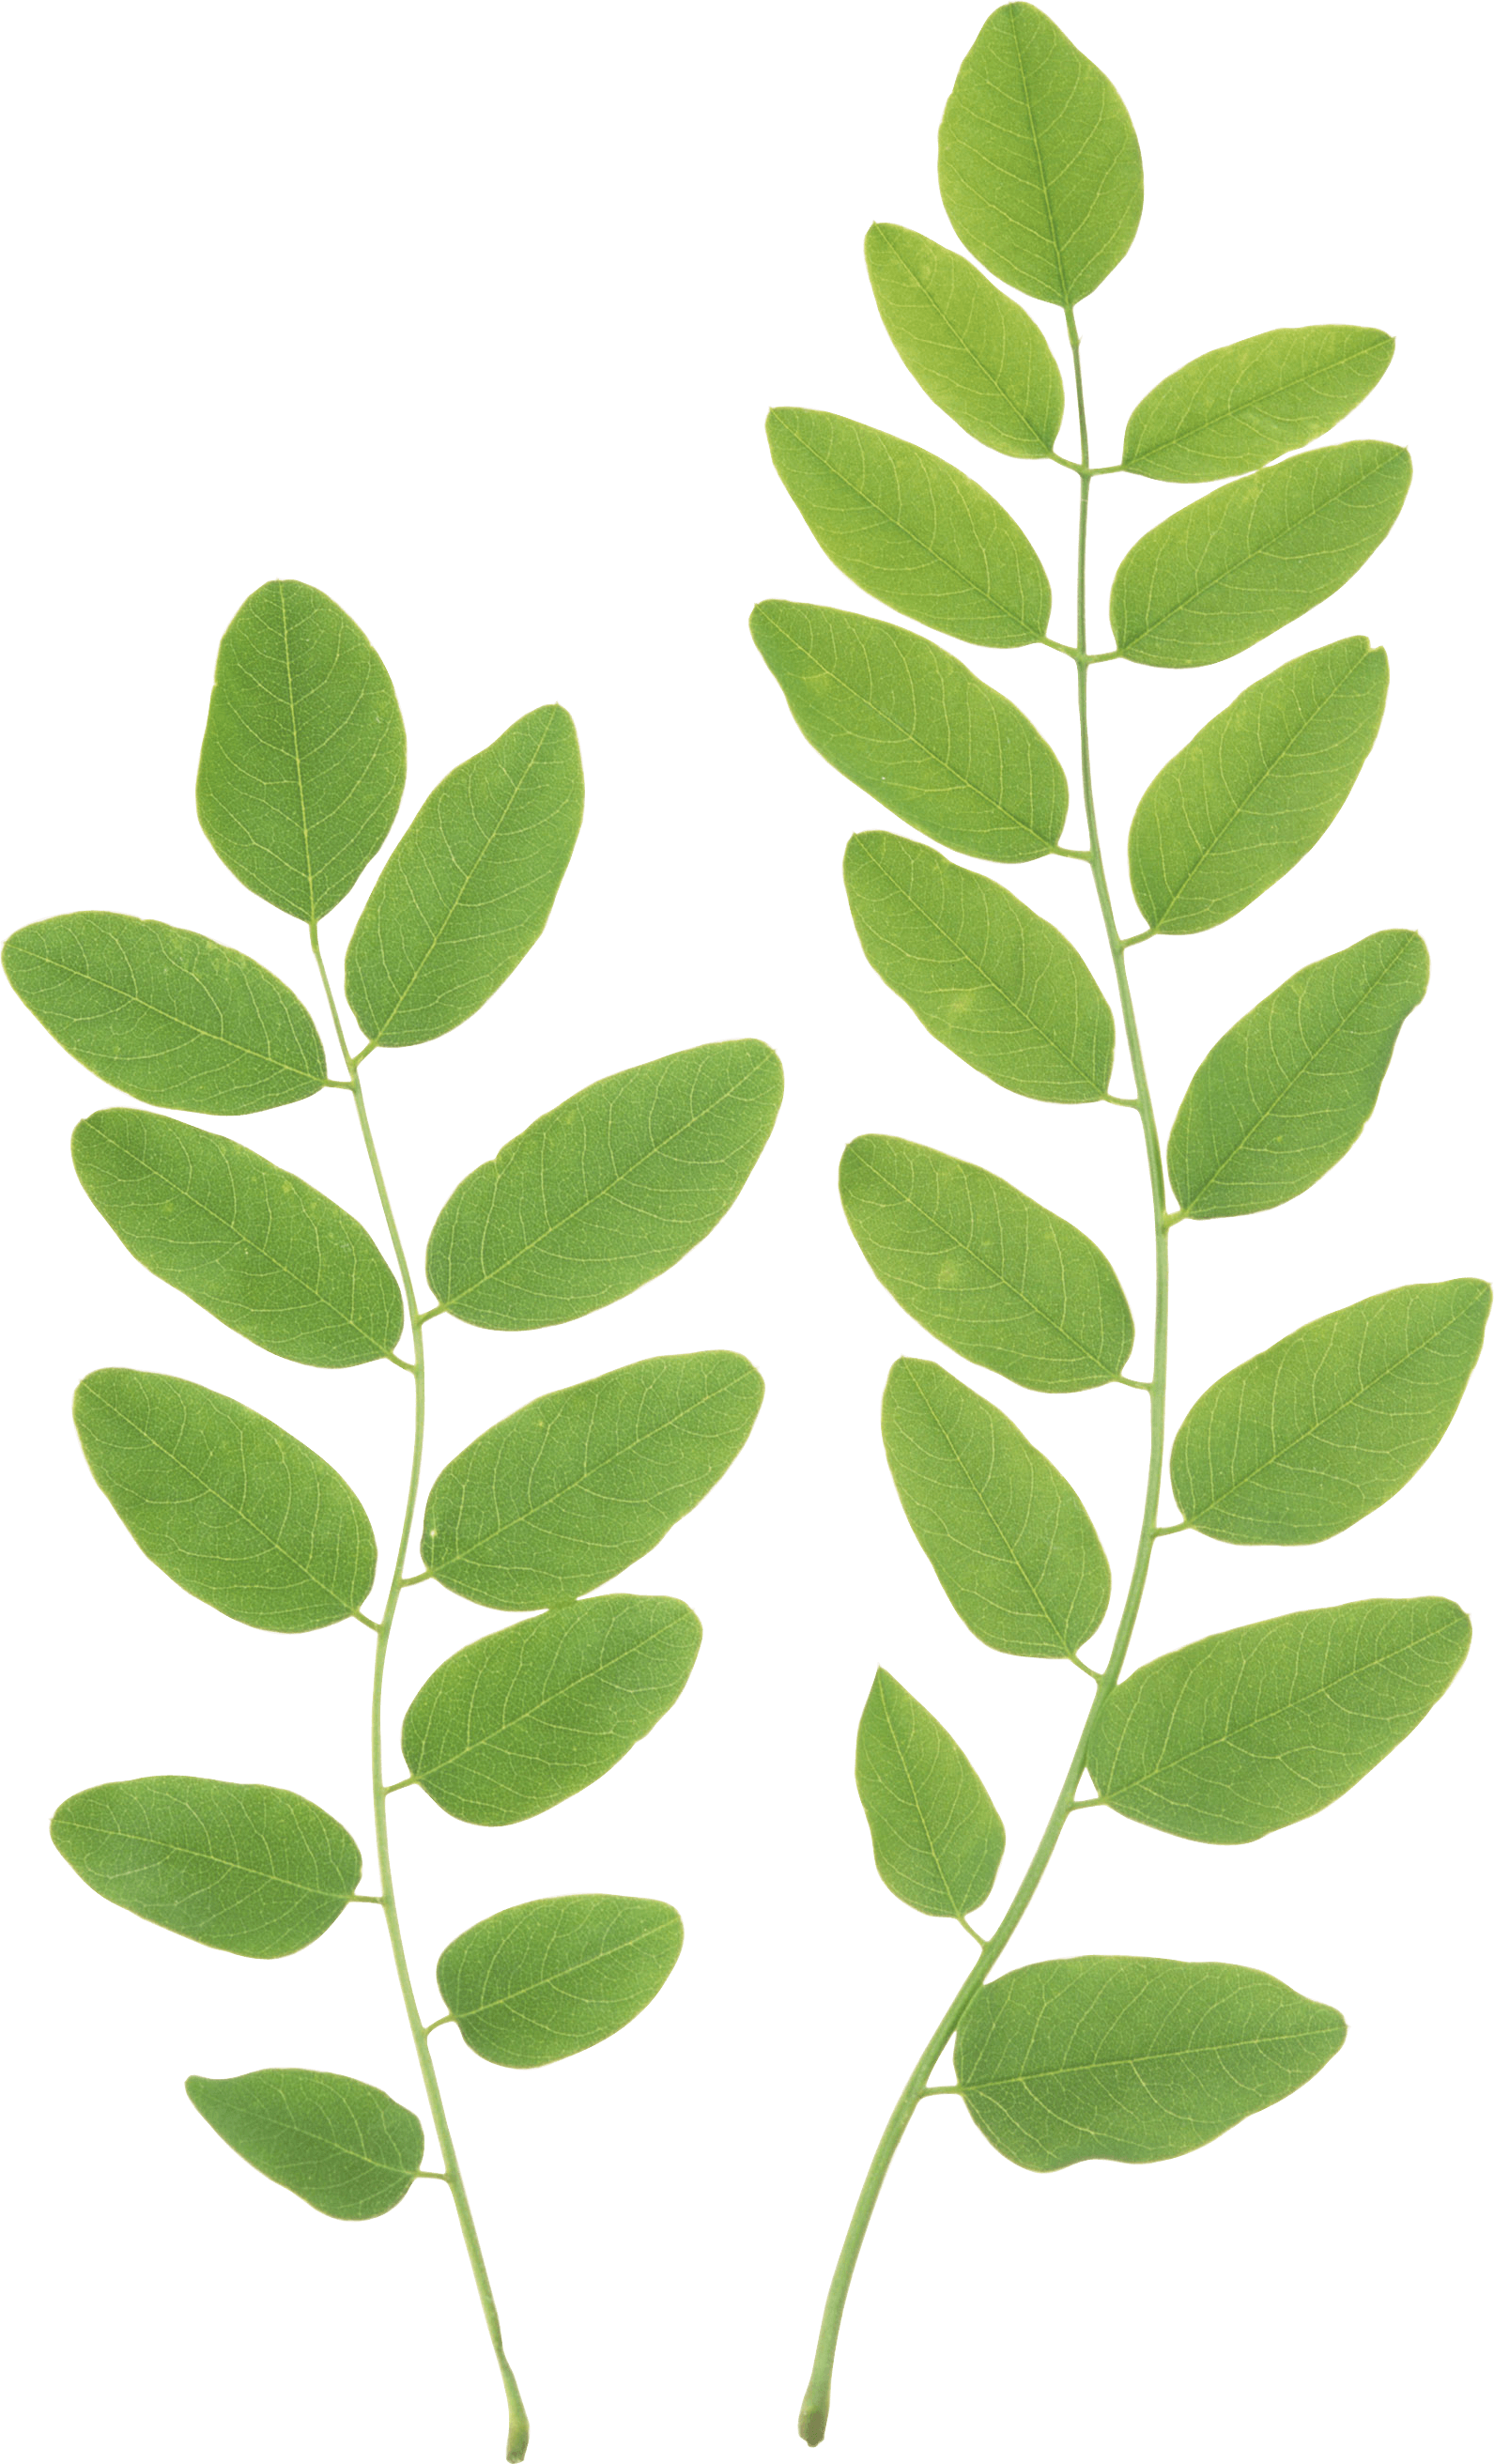 Green leafs png. Leaves images transparent free